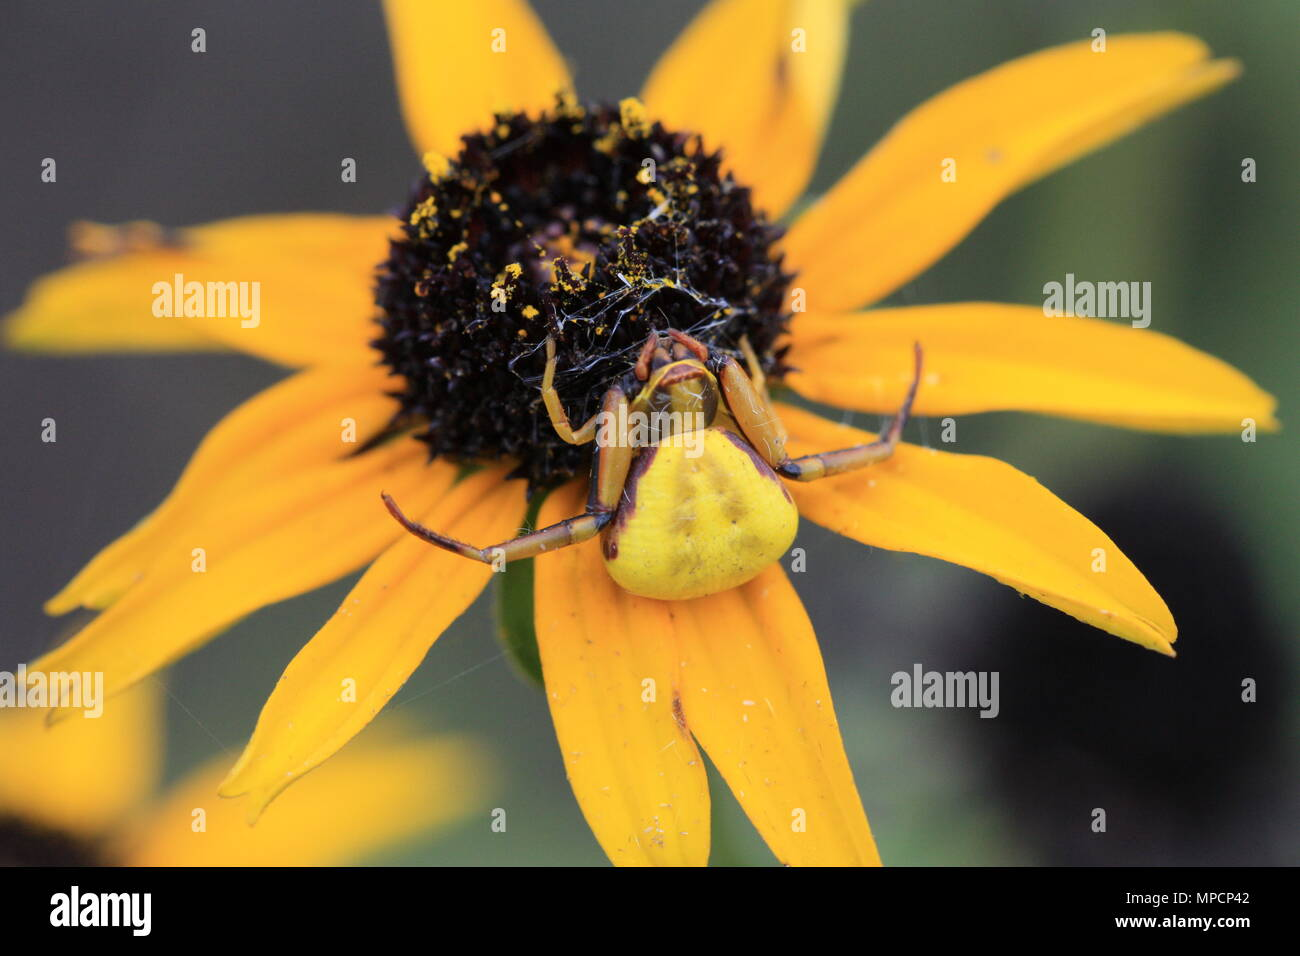 Yellow Spider On A Black Eyed Susan Stock Photo 185906898 Alamy